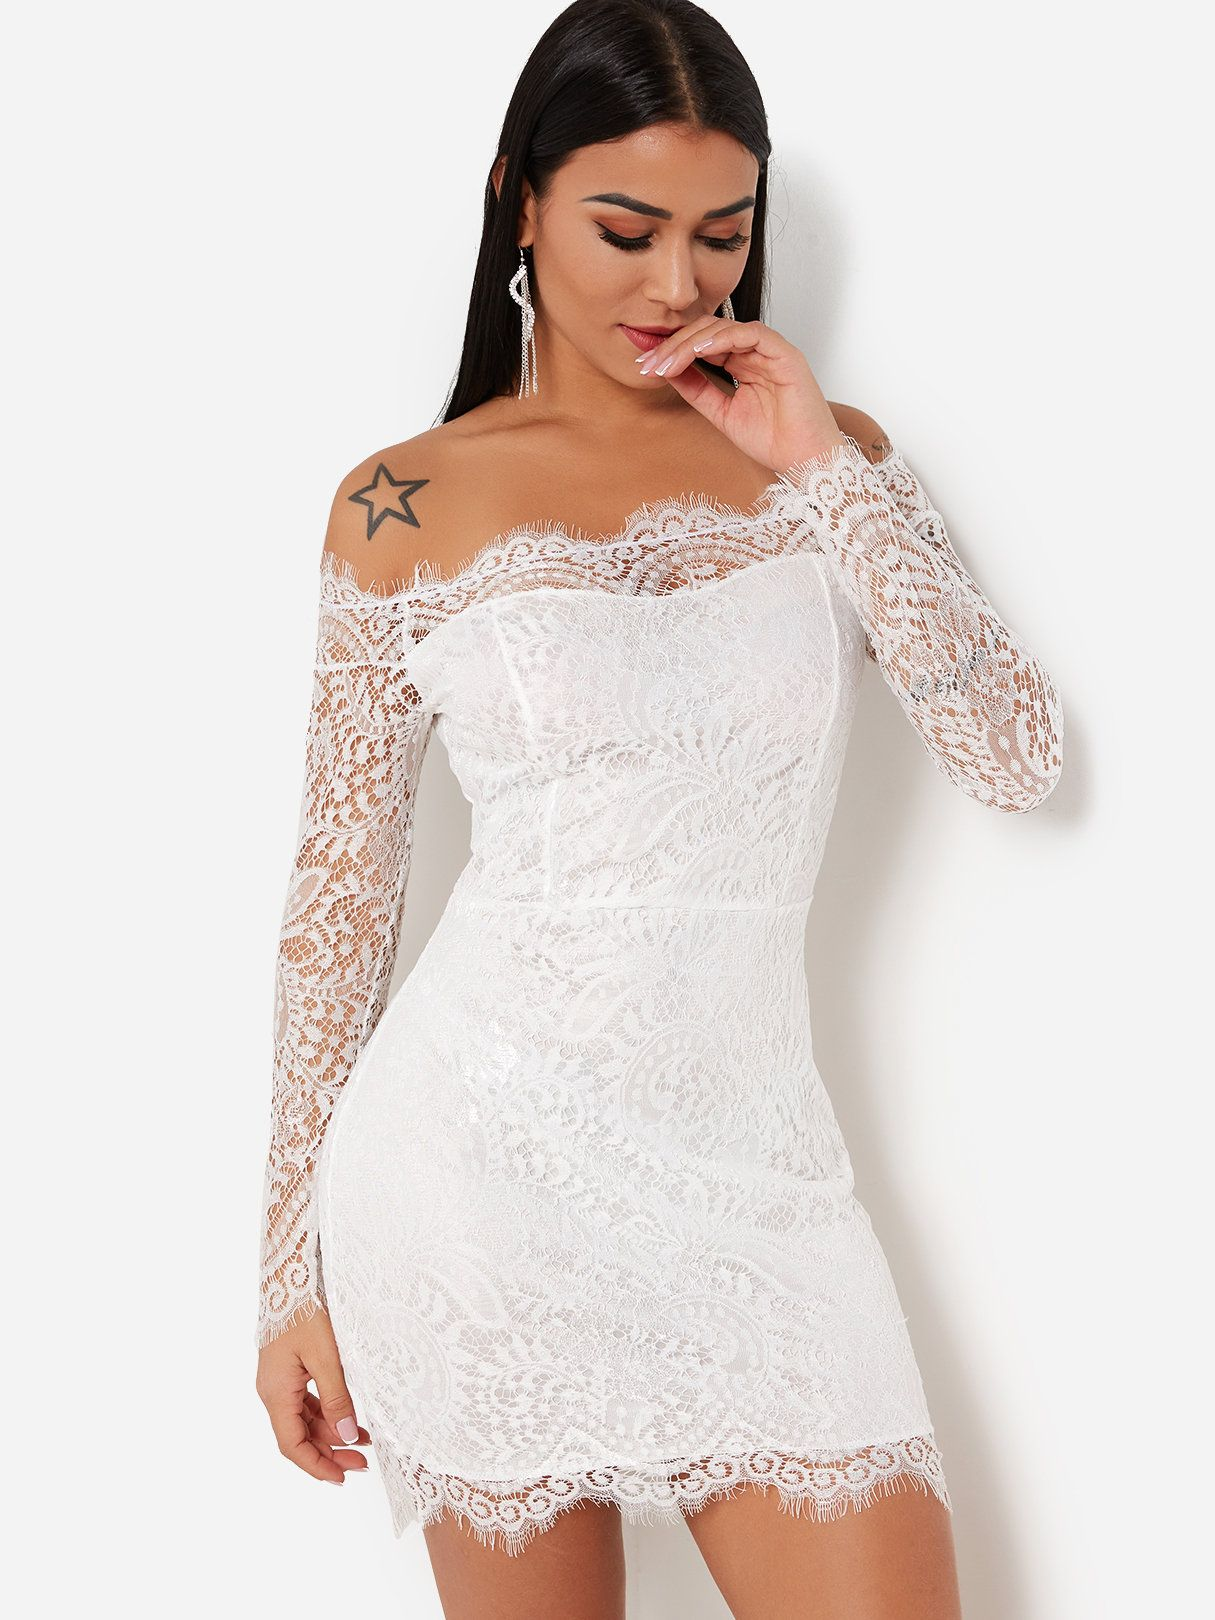 76418c504 White Lace Details Eyelash Trim Off Shoulder Long Sleeves Sexy Party Dress